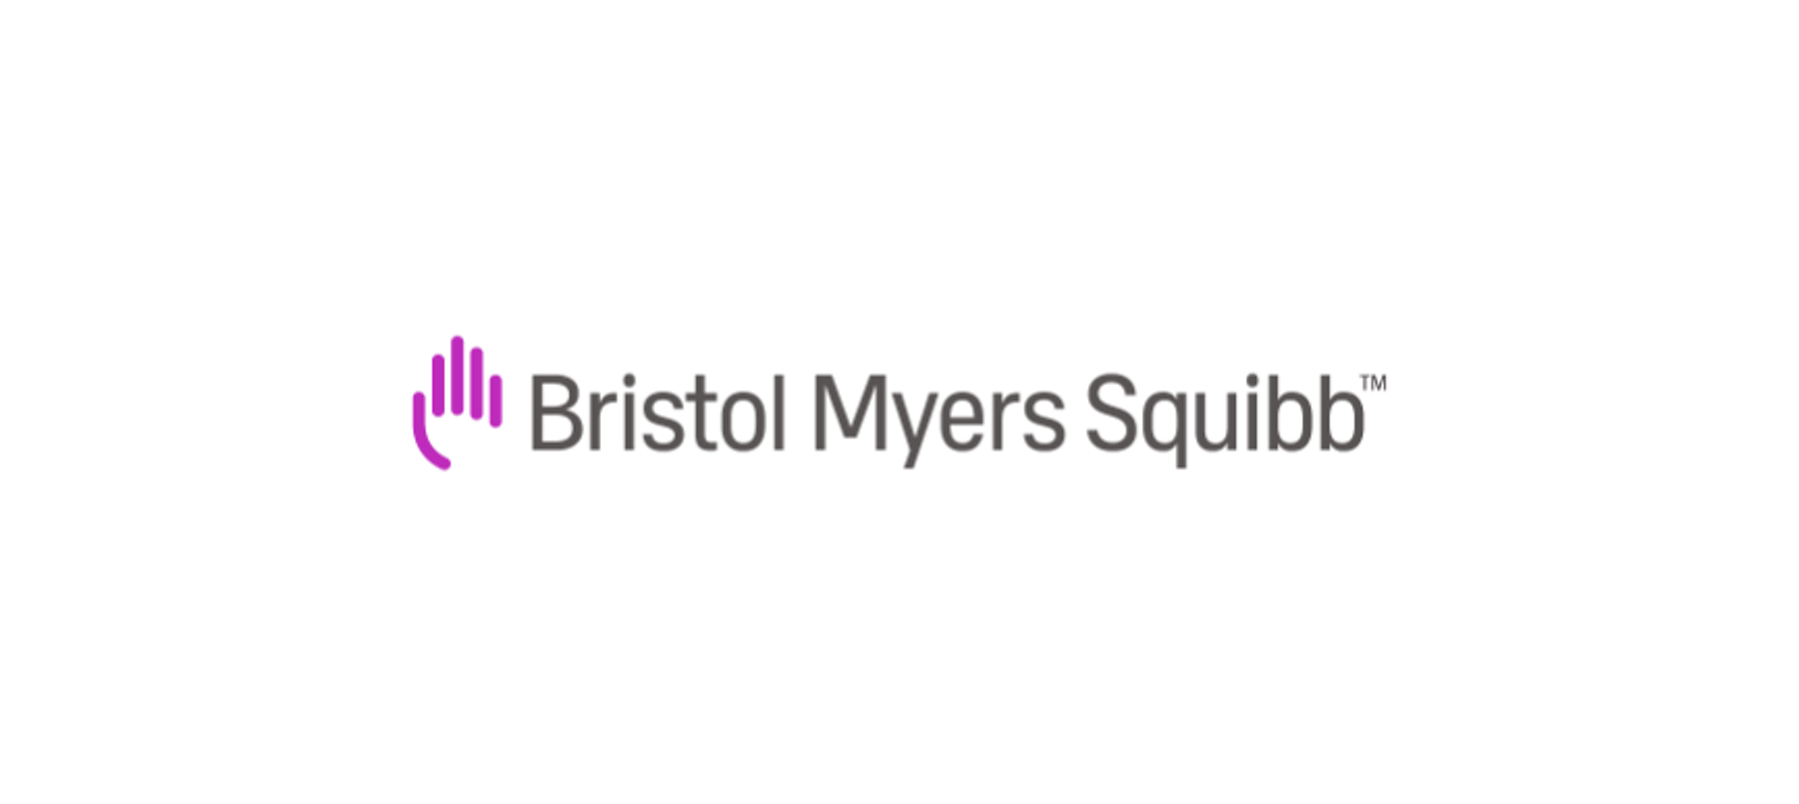 Exscientia announces multi-target, AI-driven drug discovery collaboration with Bristol Myers Squibb